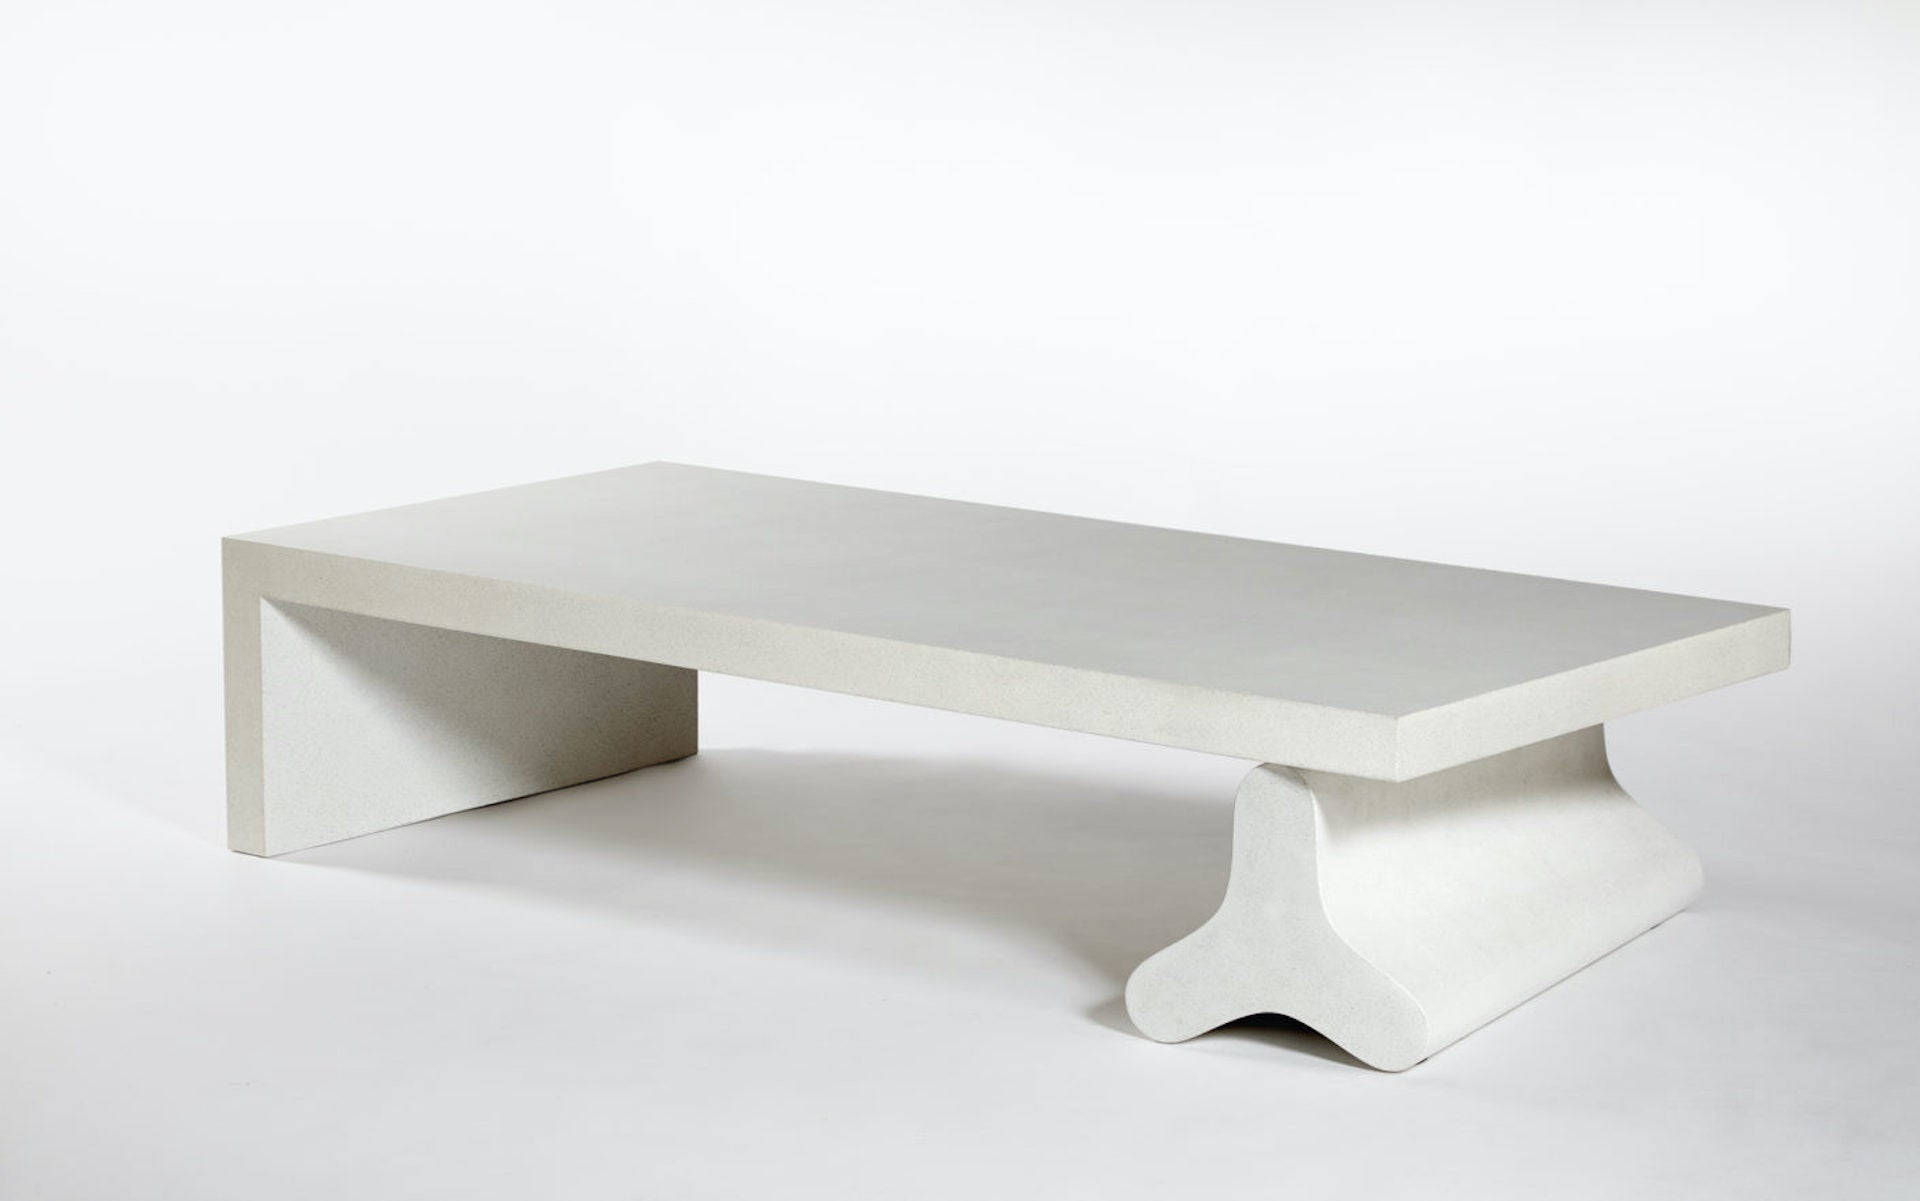 Azo Coffee Table by François Bauchet for Galerie kreo. Photo © Sylvie Chan-Liat; Courtesy of Galerie kreo